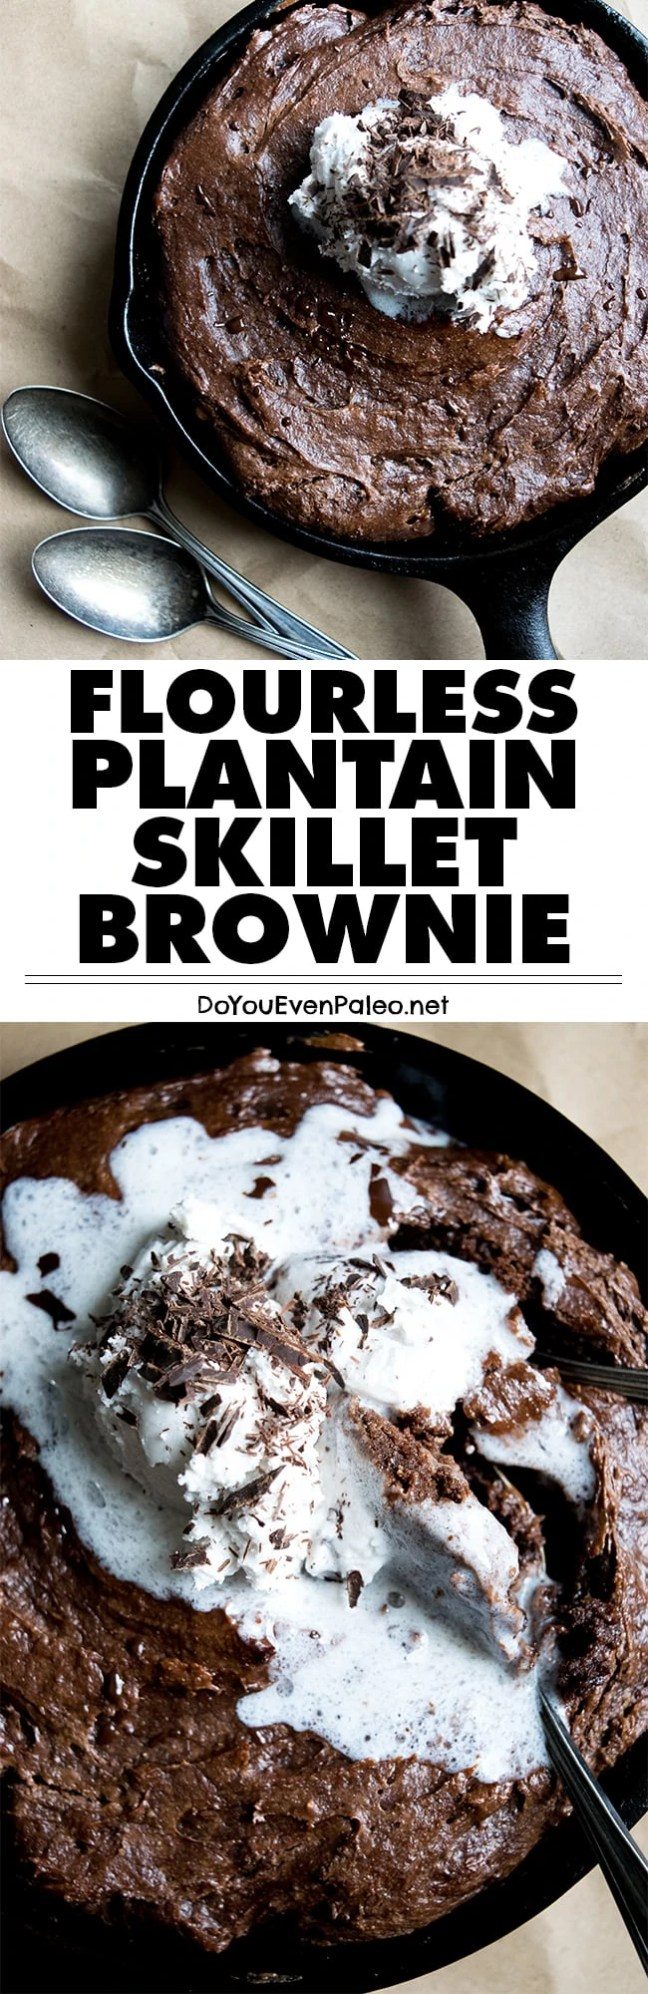 A decadent treat with just a handful of ingredients! This flourless plantain skillet brownie is paleo, vegan, gluten free and nut free. | DoYouEvenPaleo.net